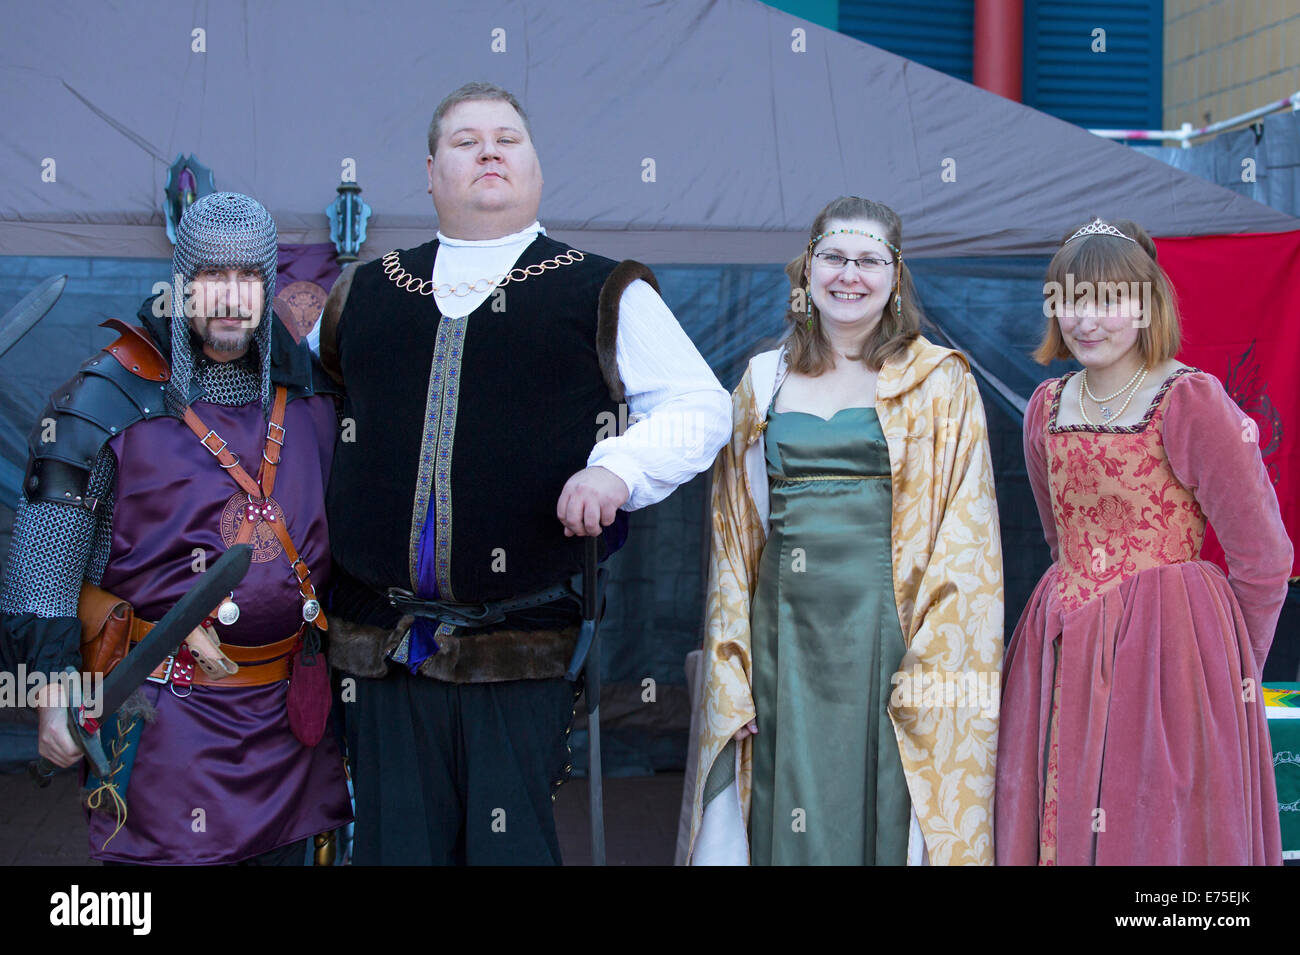 Calgary, Canada. 7th September, 2014.  Members of the live action role-playing group Alliance Alberta attend the - Stock Image